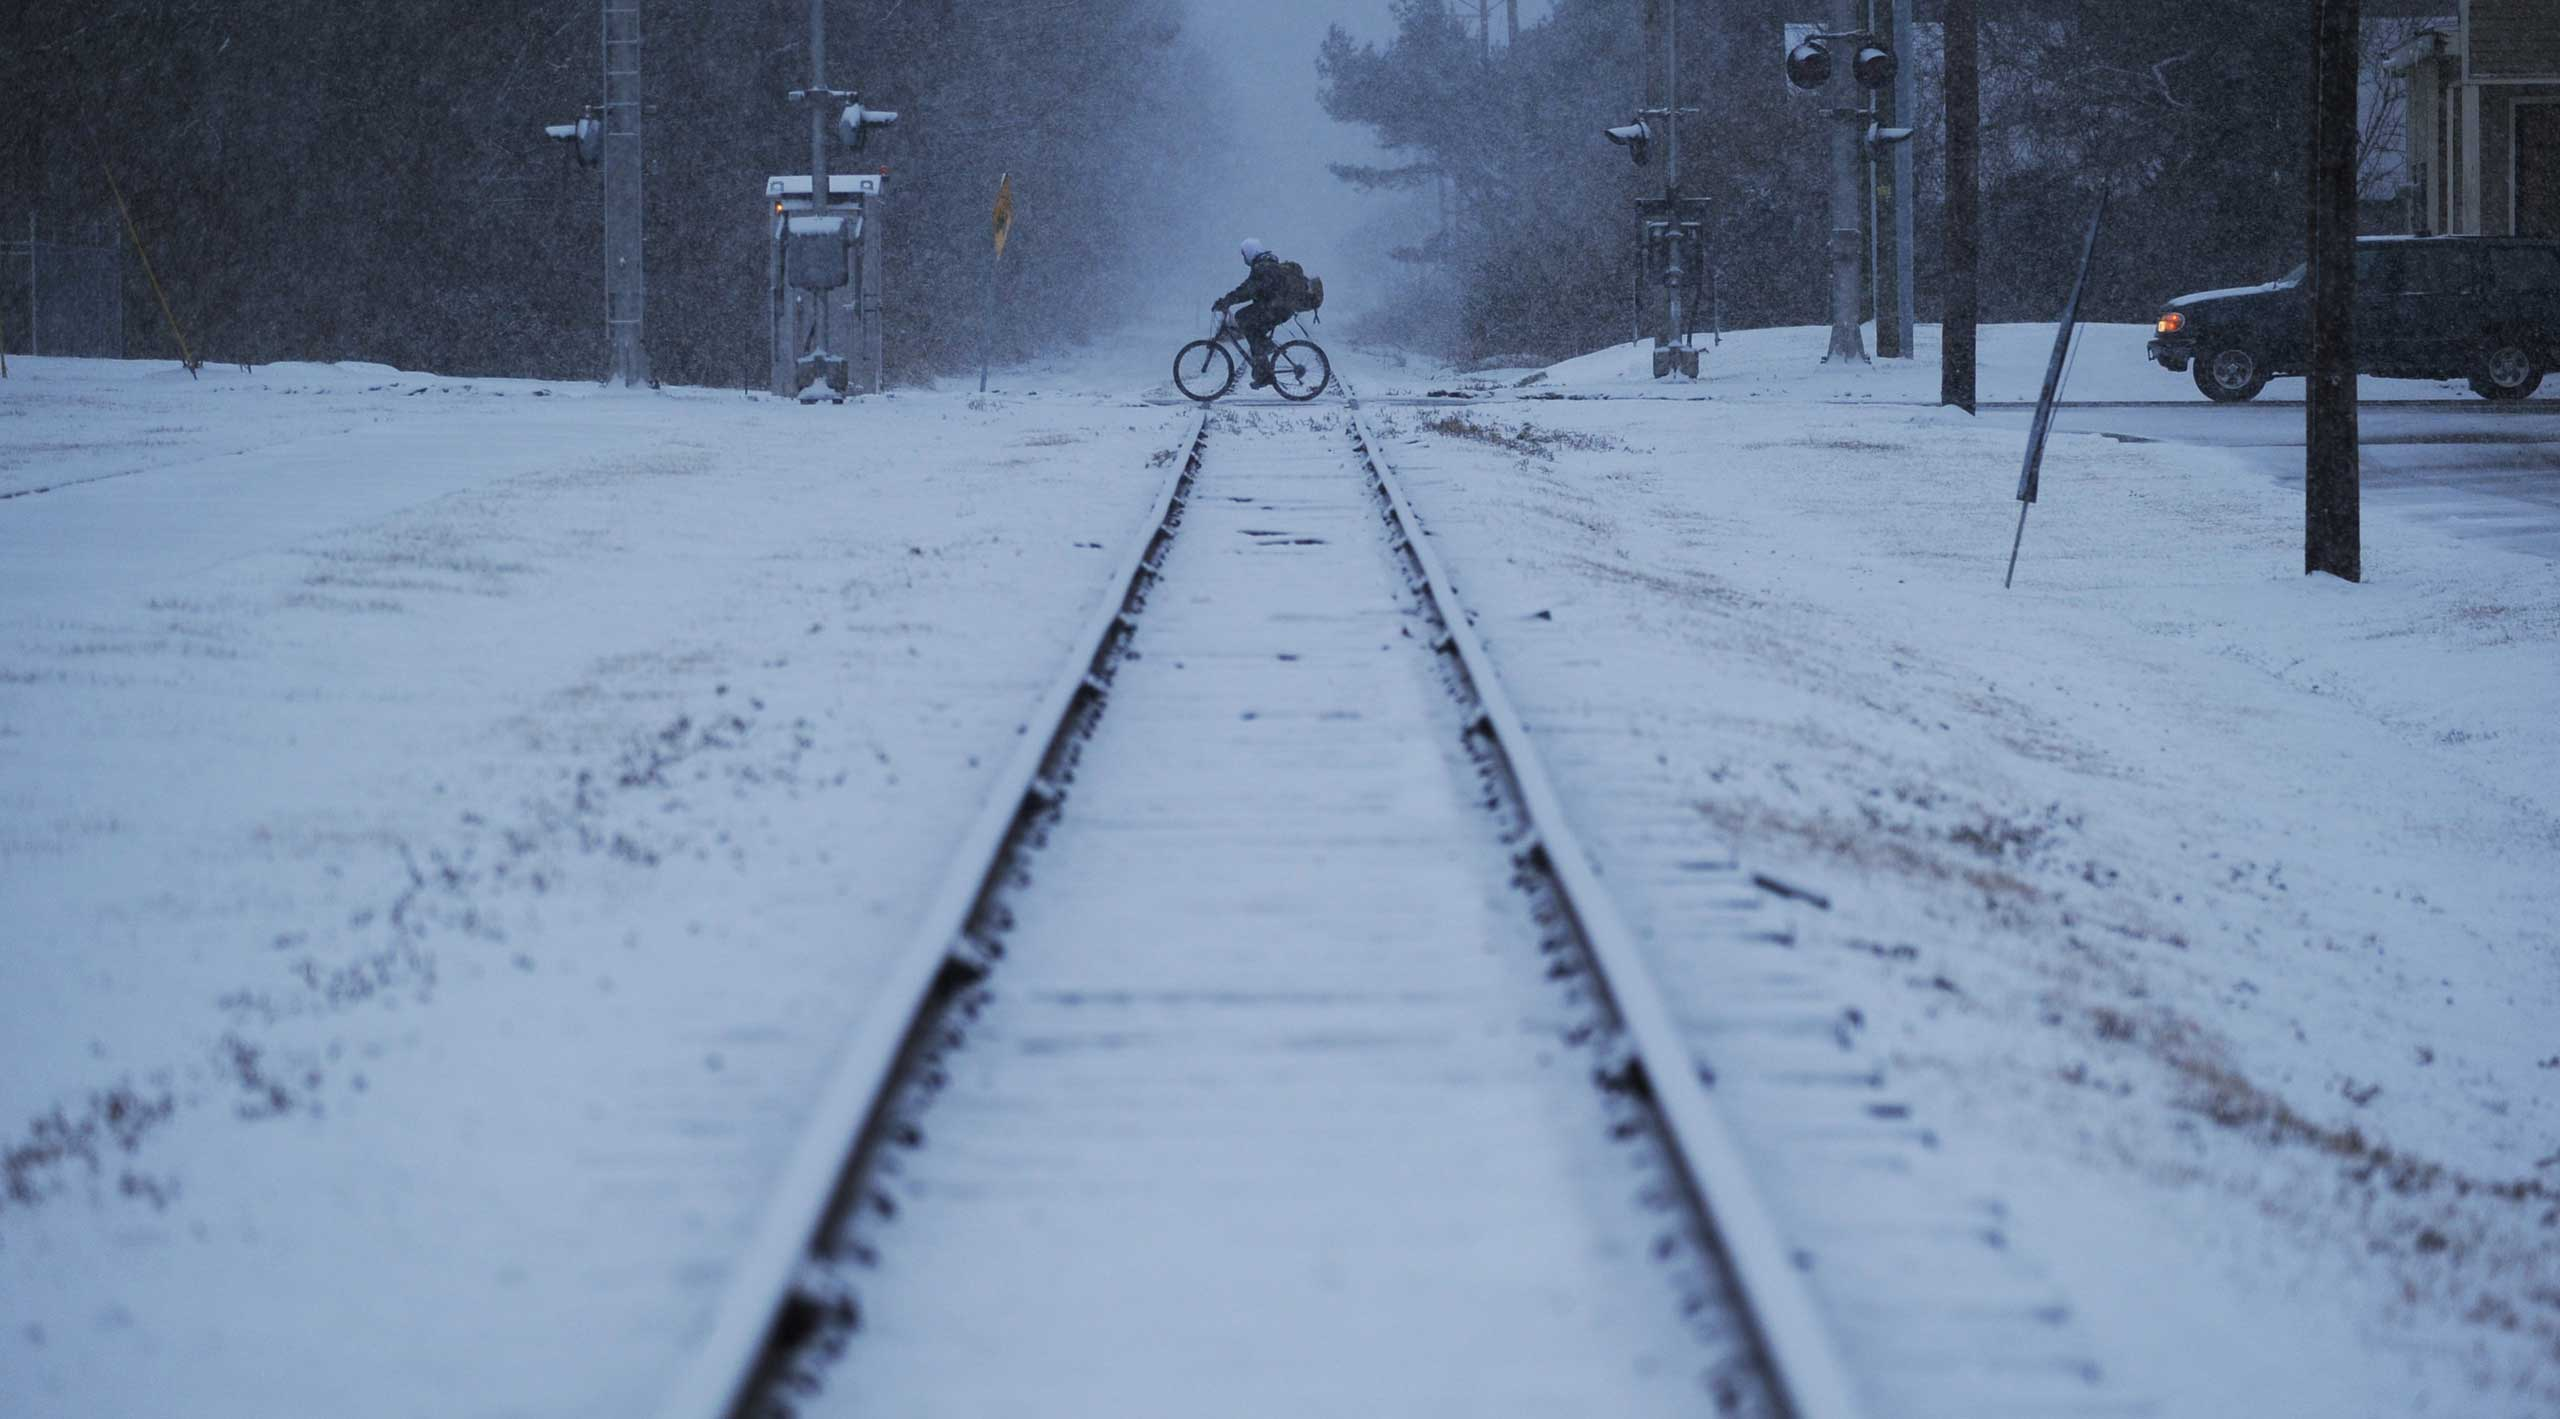 A man rides his bicycle across the railroad tracks in Exmore, Va. as snow falls, Feb. 24, 2015.